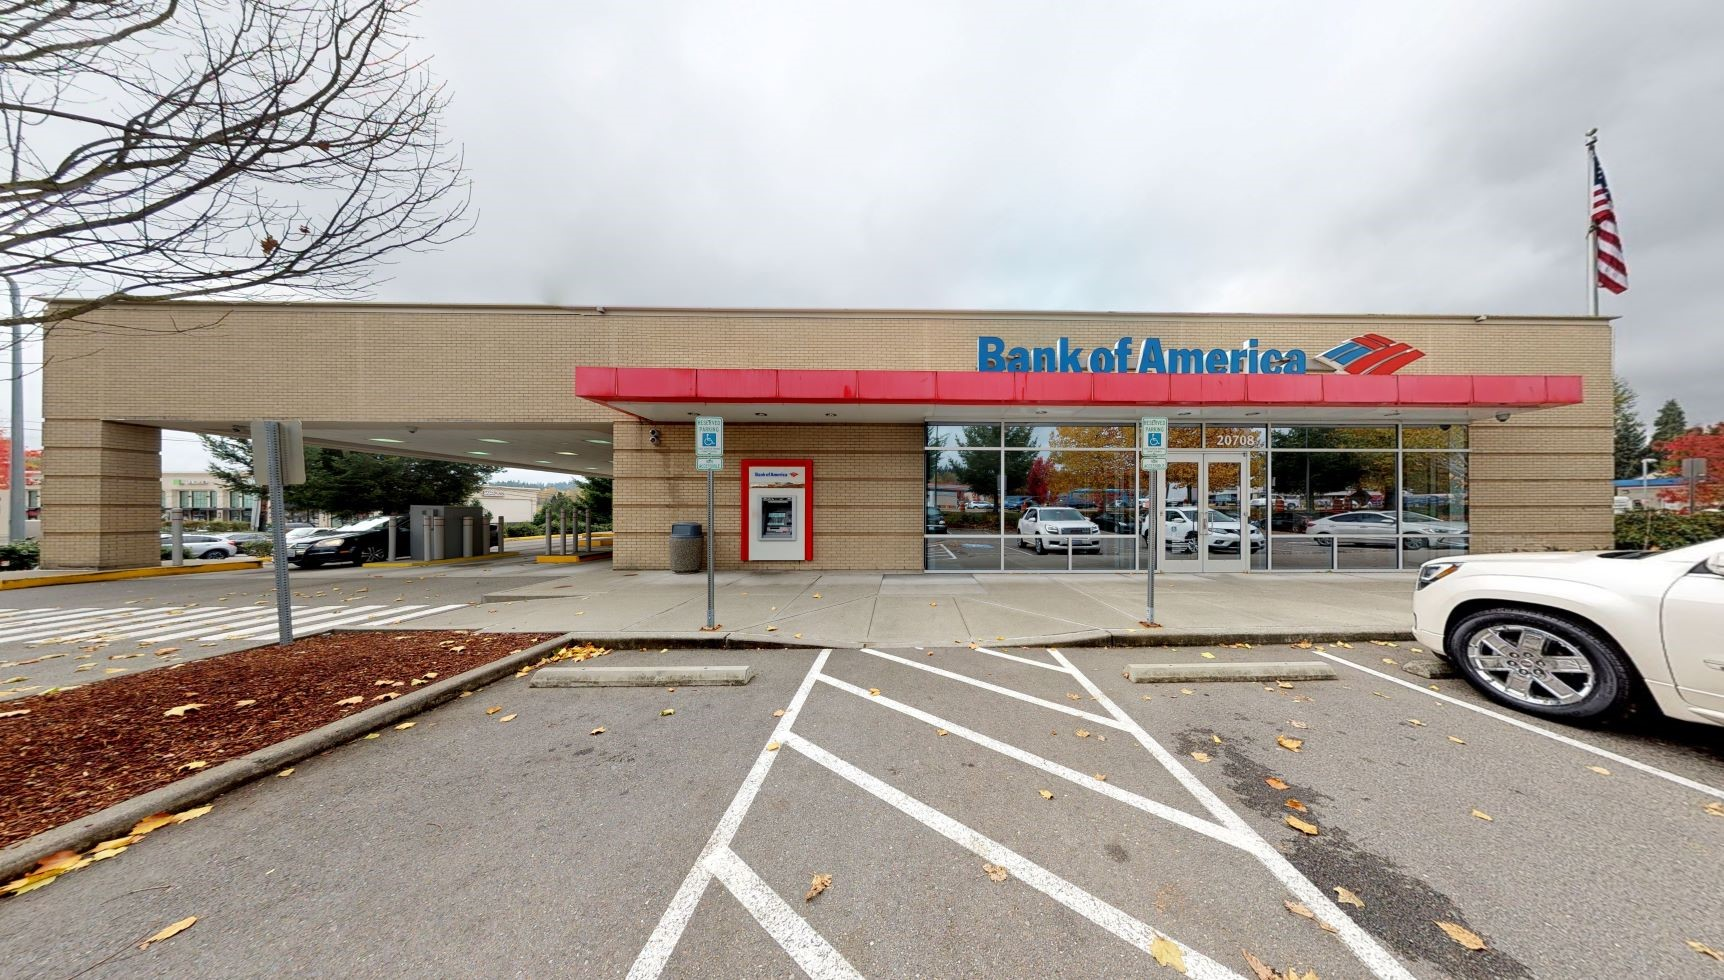 Bank of America financial center with drive-thru ATM | 20708 Bothell Everett Hwy, Bothell, WA 98012